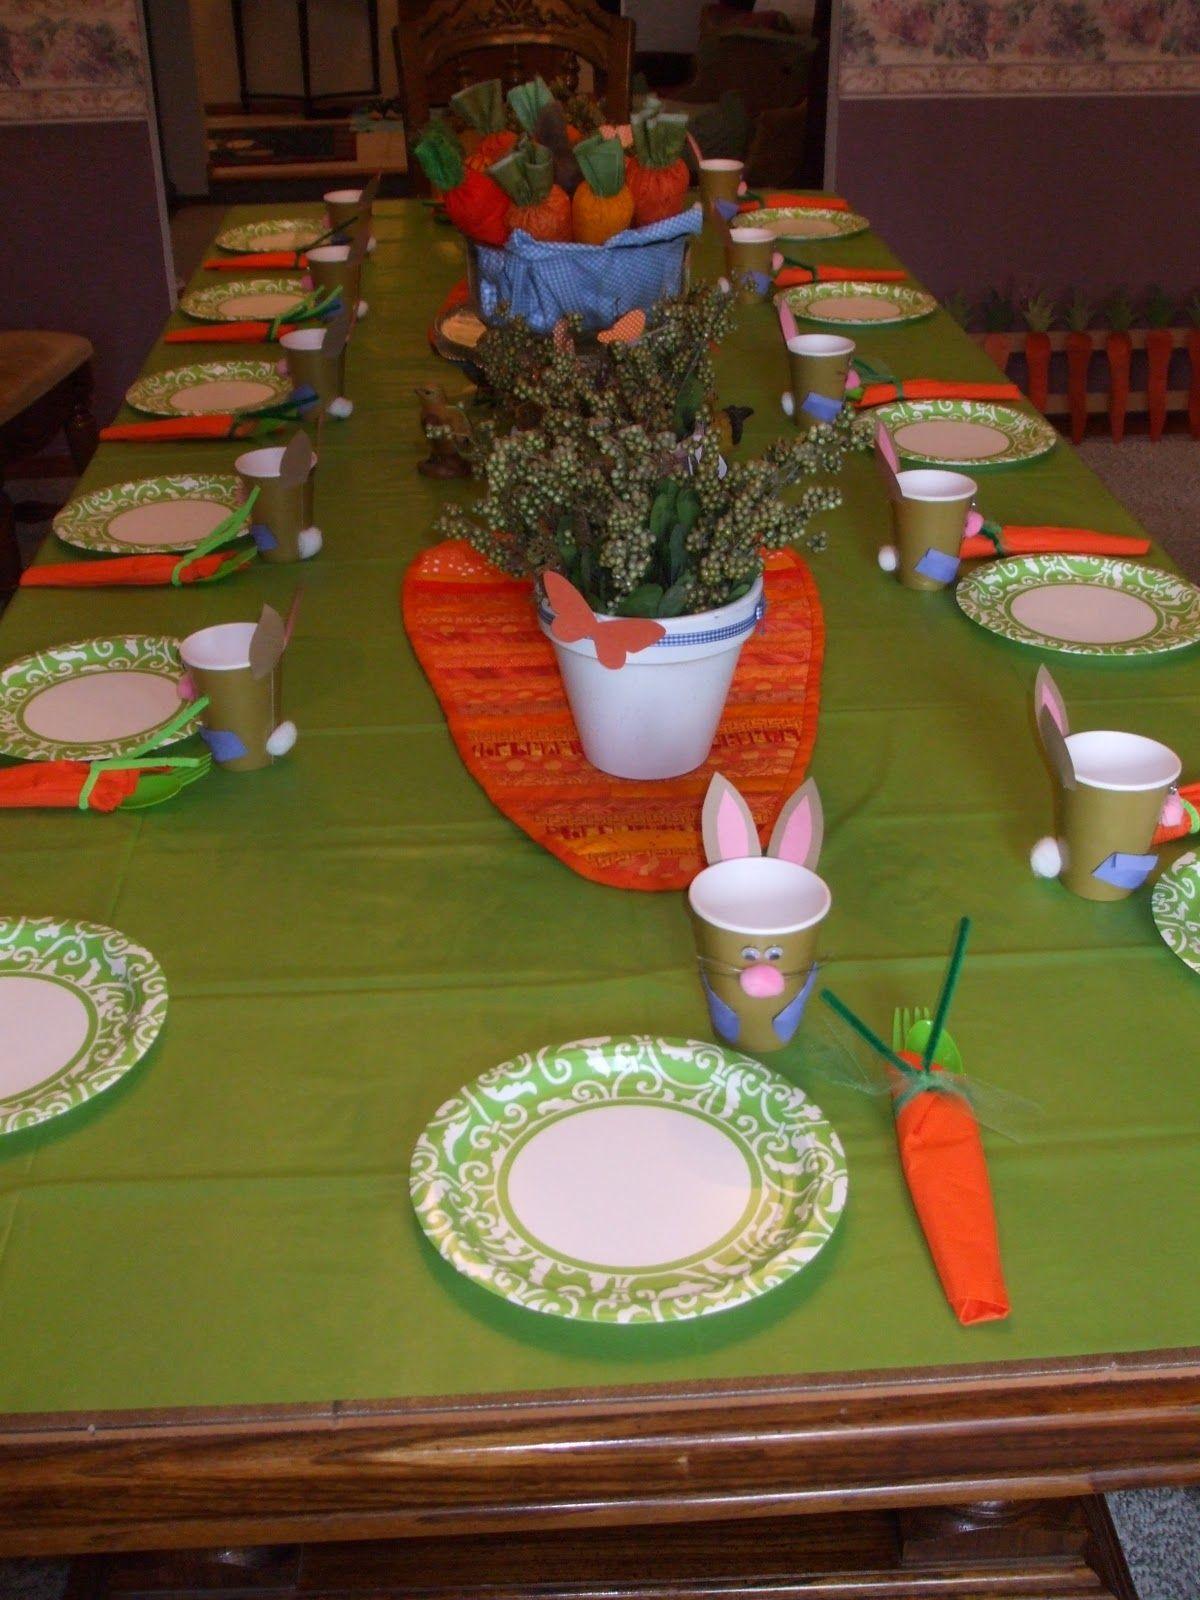 Cute table set up for Easter/Spring party - bunny cups, carrot ...